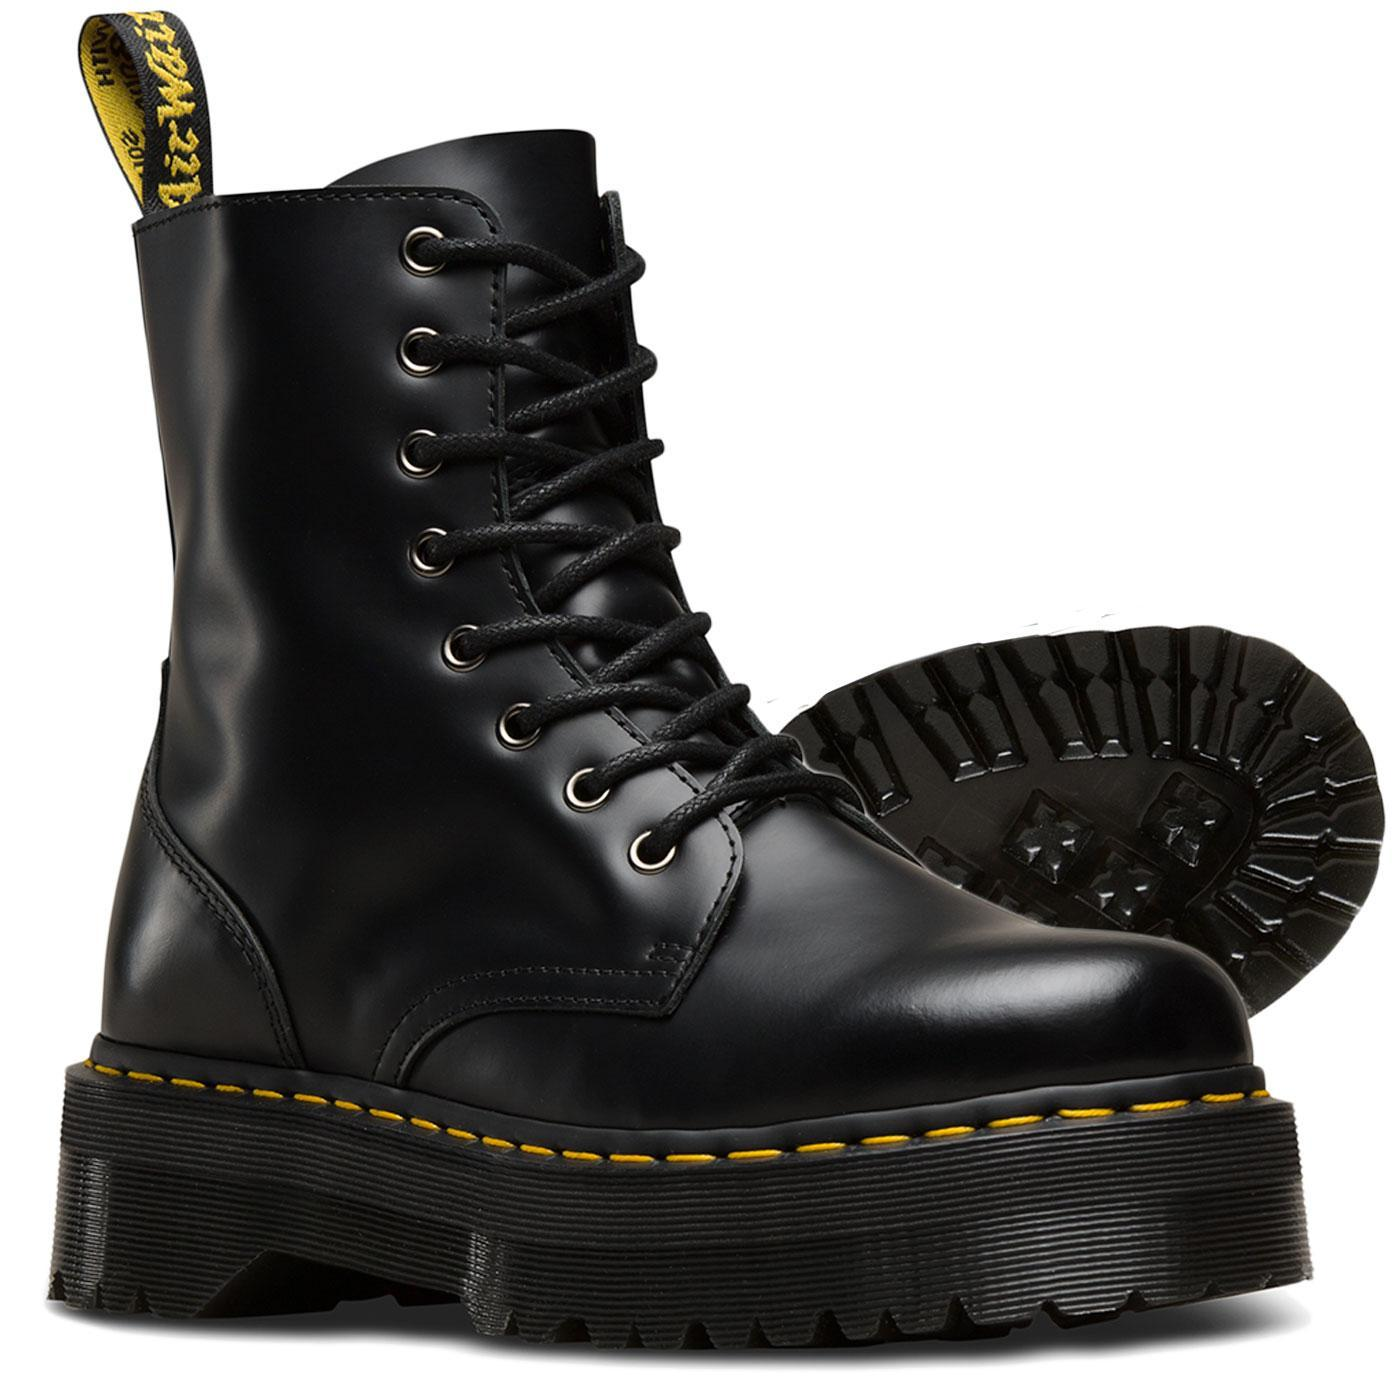 Shop Men's & Women's Punk Rock Boots